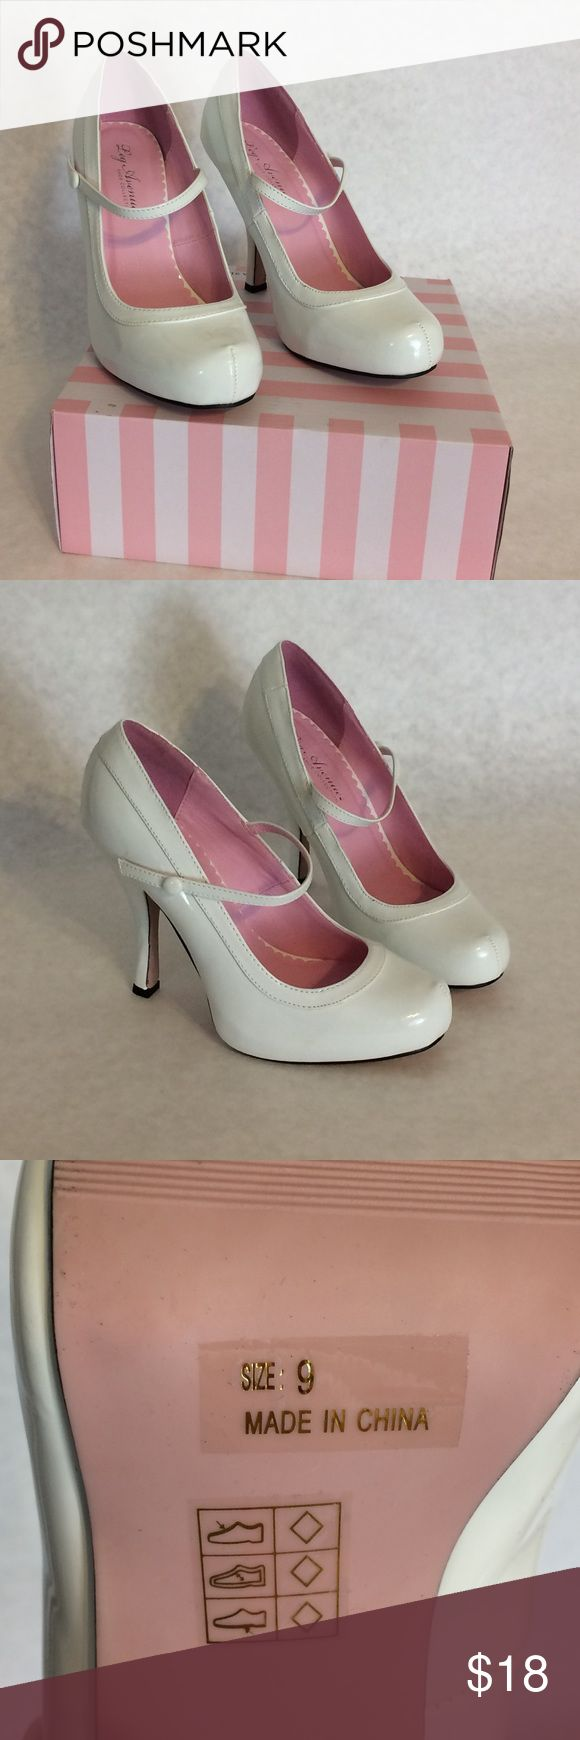 """White costume heels, leg avenue Cute shoes for a Halloween costume! Only worn once. I wore them with knee high socks and they were so cute. The heel is 4"""". Message me with any questions about the shoes or what you should be for Halloween 👻!? Leg Avenue Shoes Heels"""